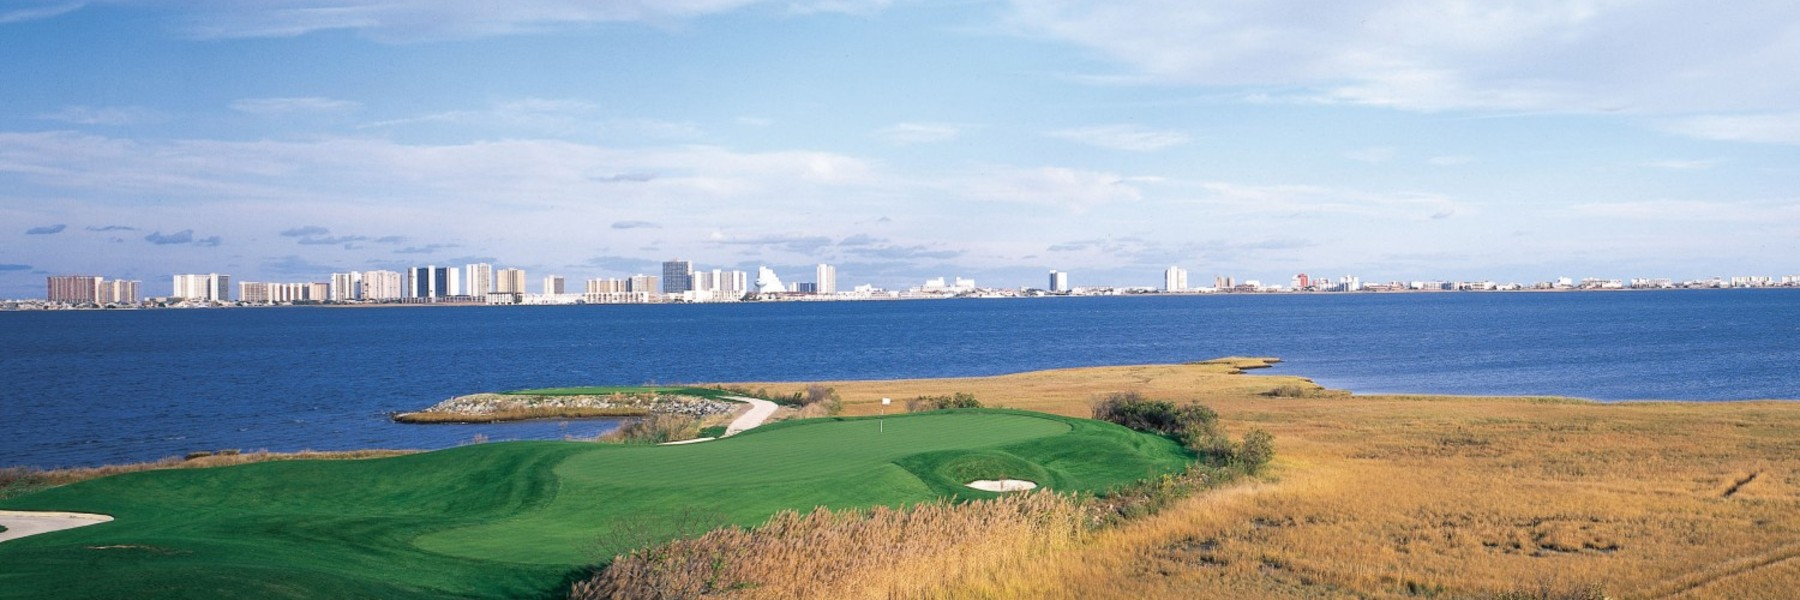 Golf Vacation Package - Triple Crown Package with Free Night in Golf Course Townhouse - For $410 TOTAL per person!